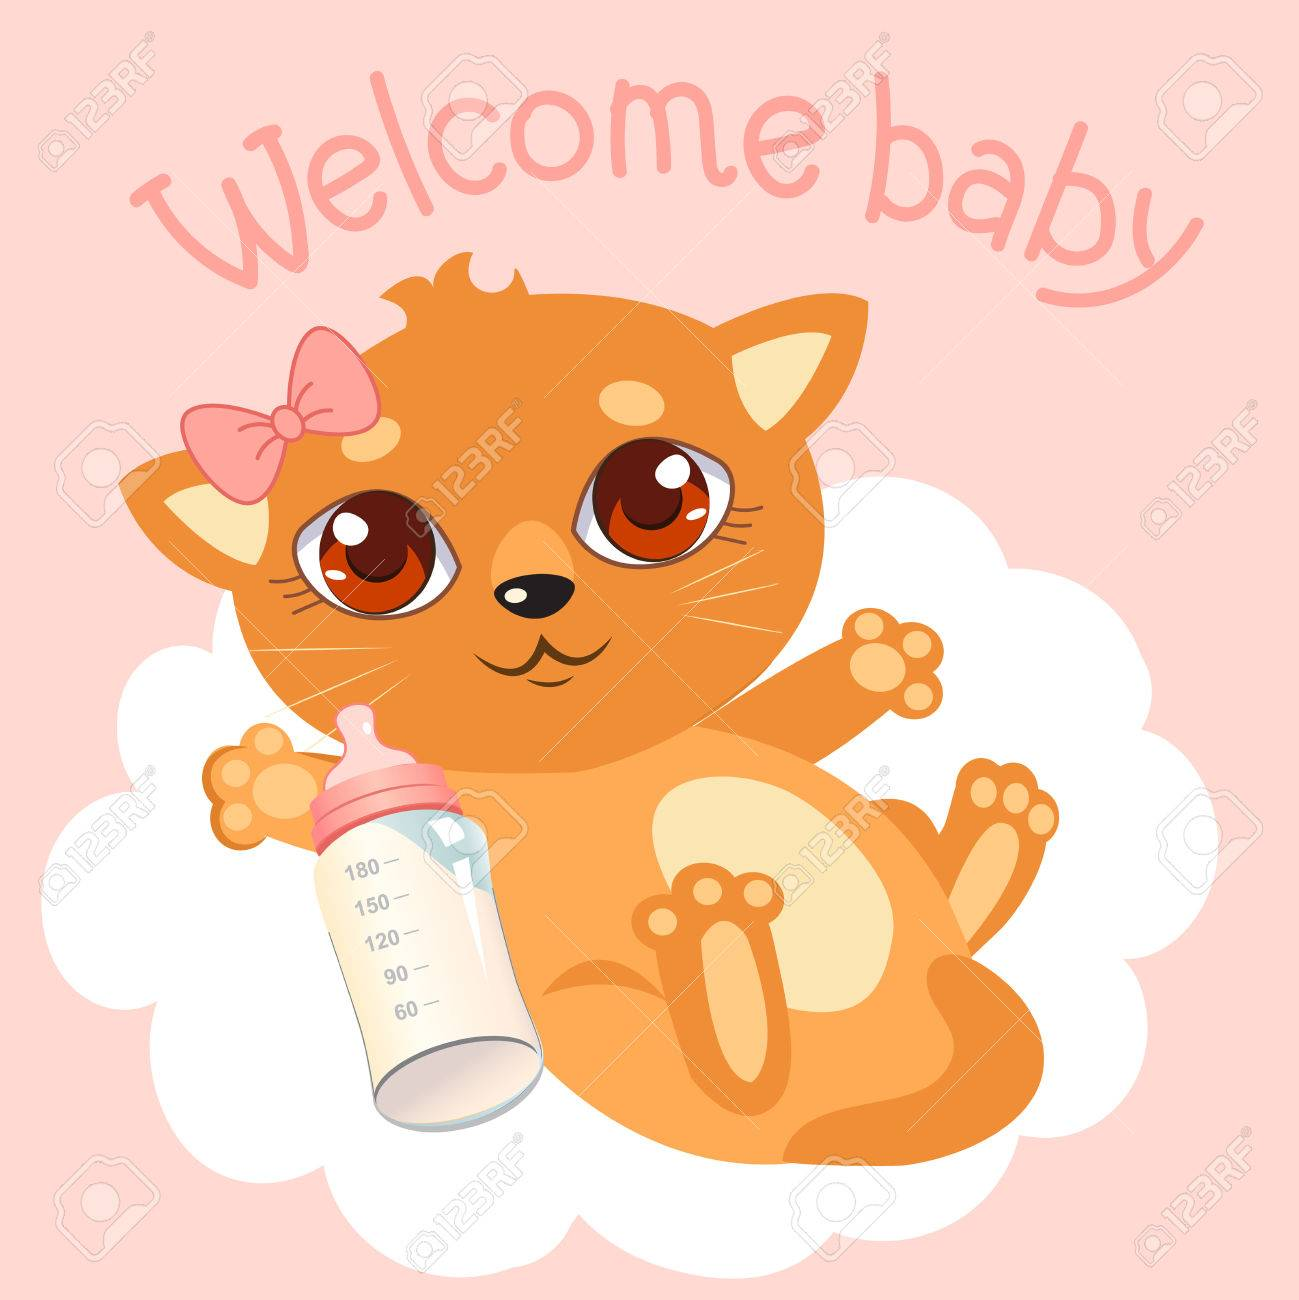 Welcome Baby Girl Newborn Baby Cat Welcome Baby Invitation